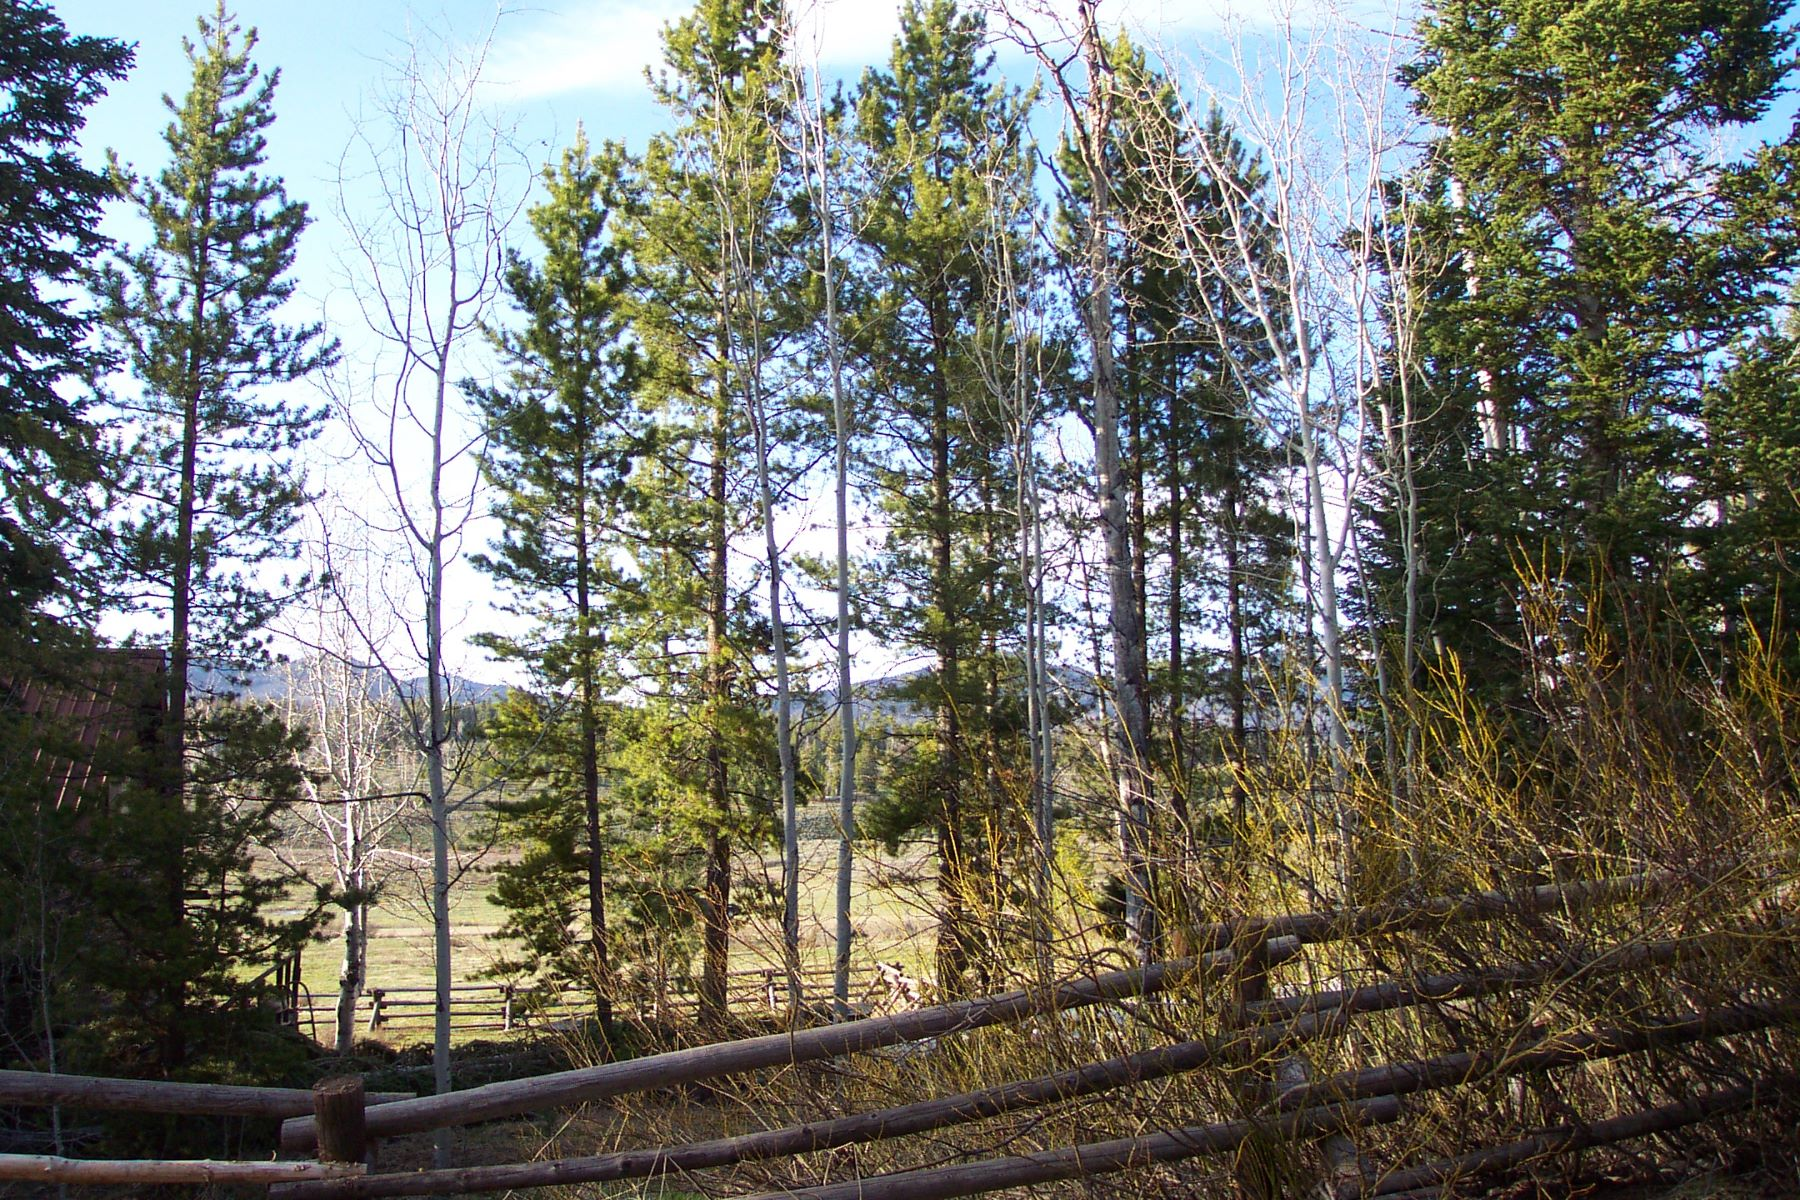 Land for Sale at Captain's Cove Lot 39455 Crows Nest Drive Clark, Colorado 80428 United States